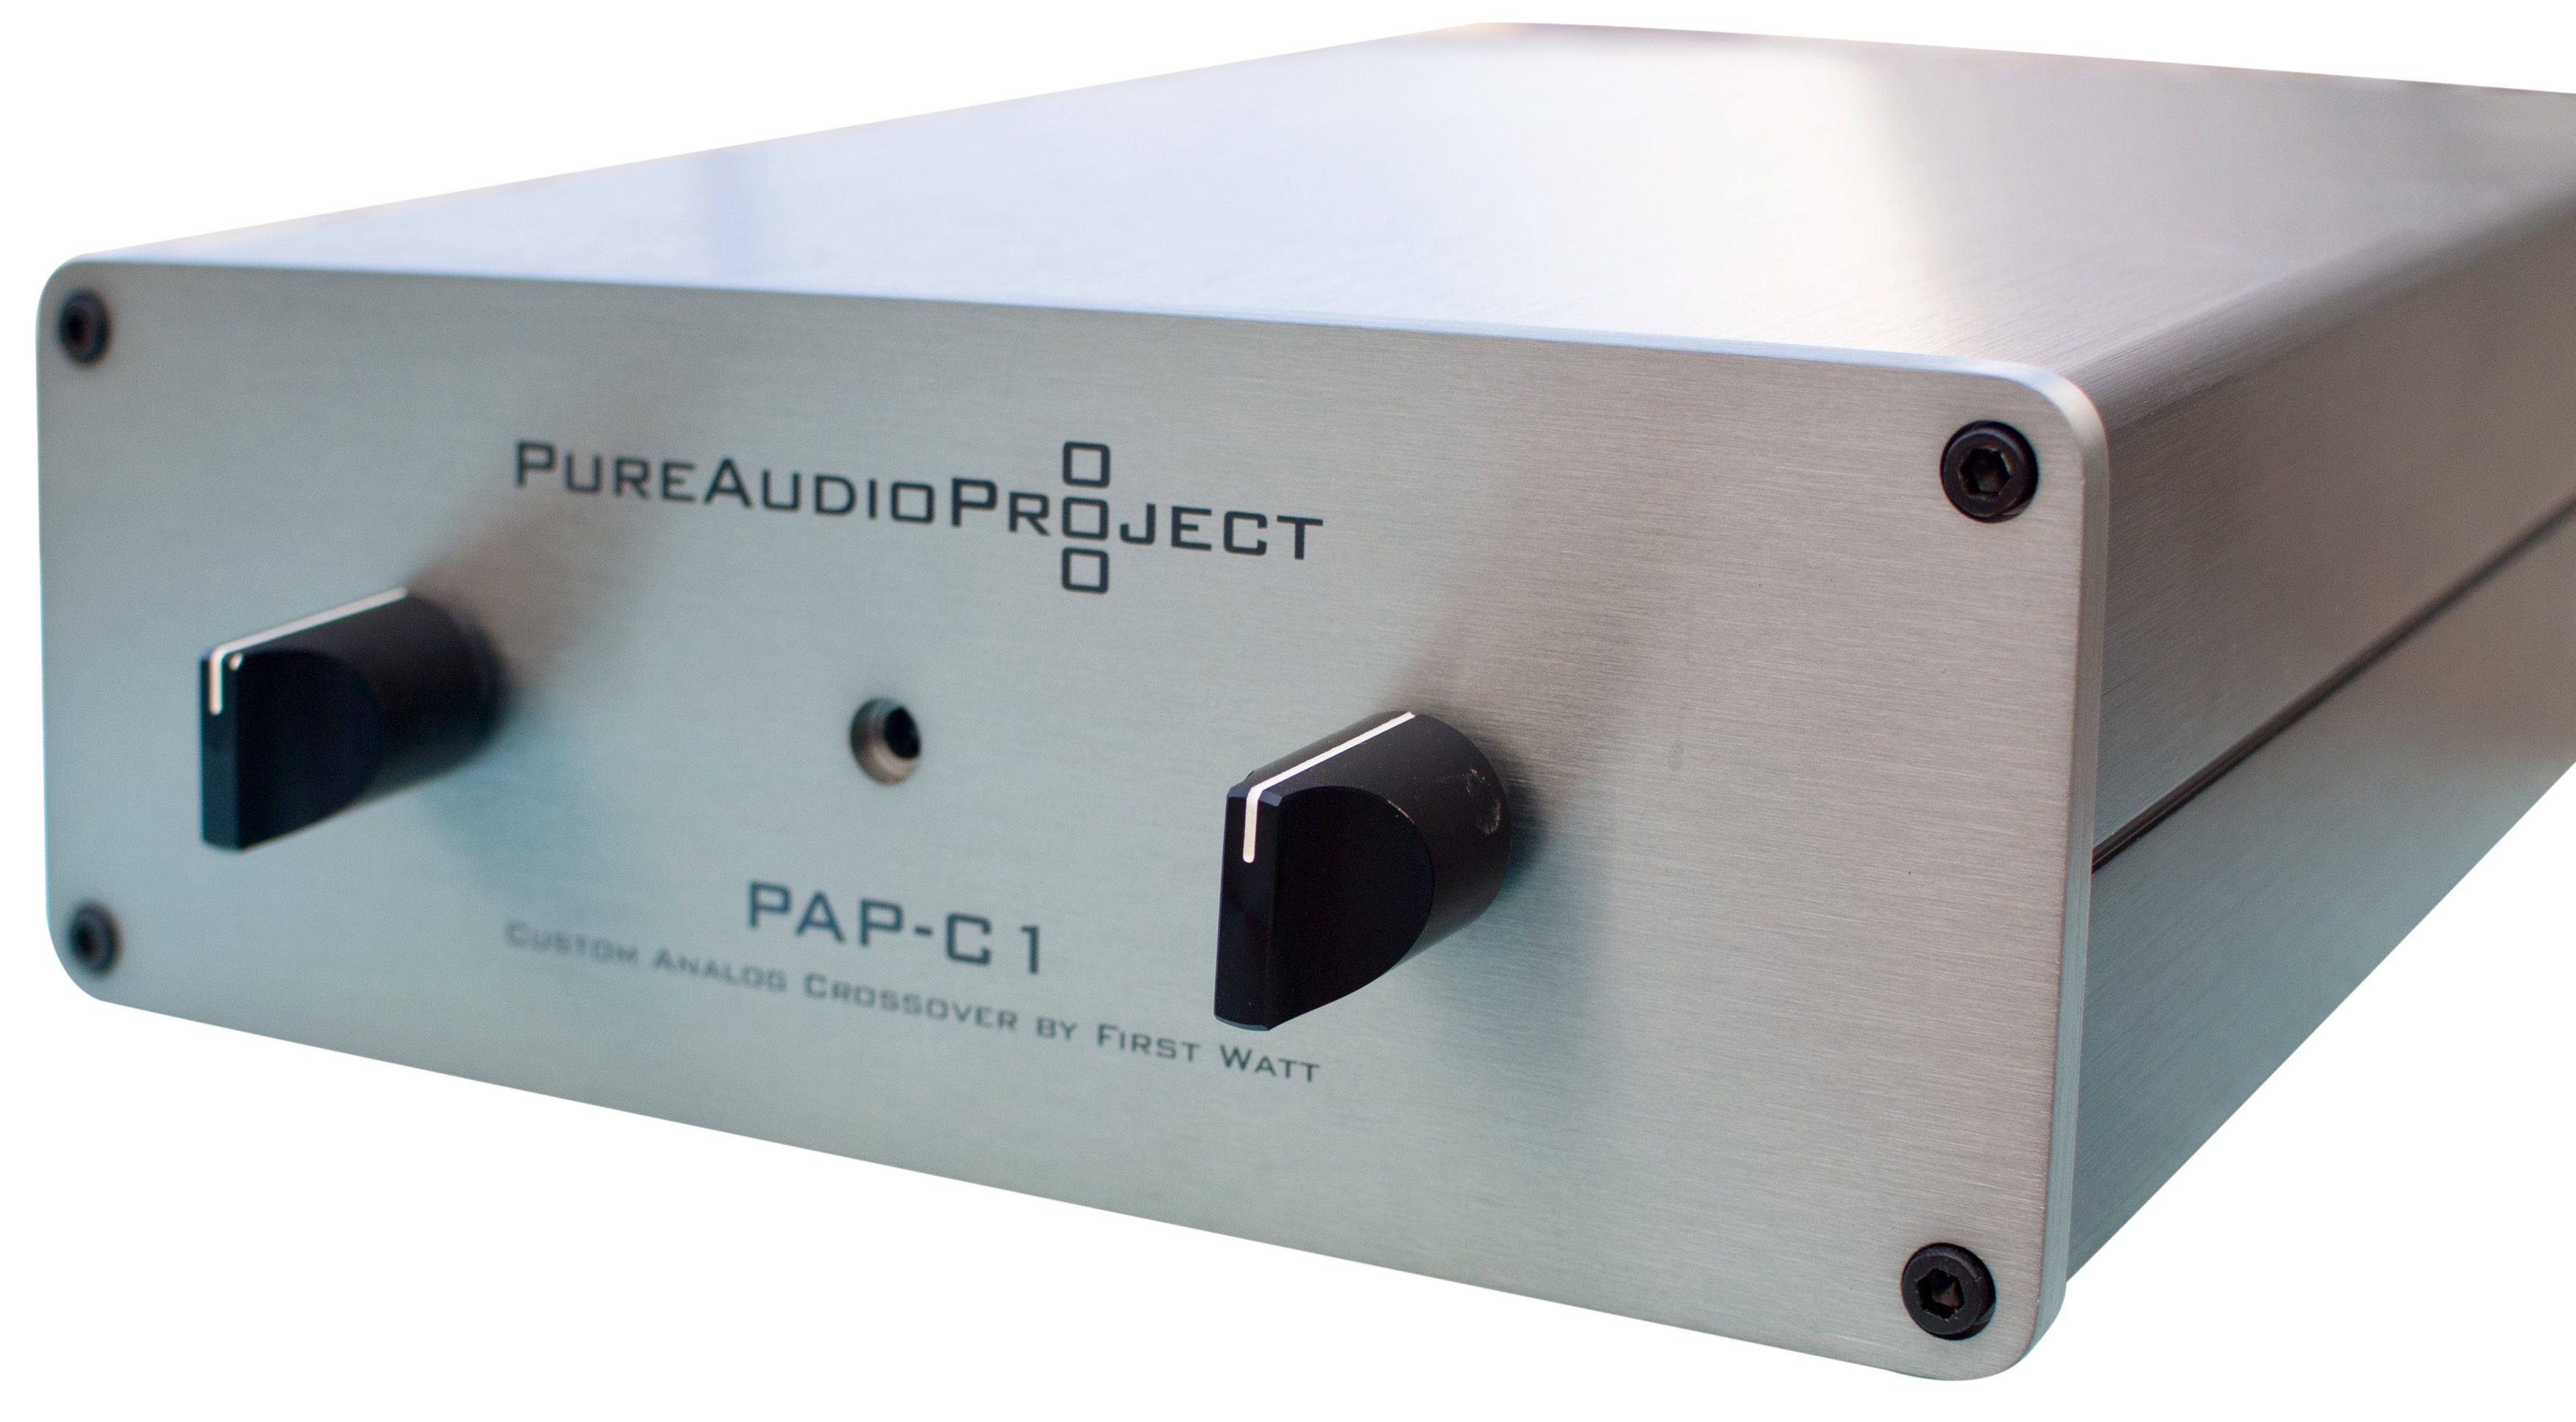 PureAudioProject PAP-C1 pre-order ends soon